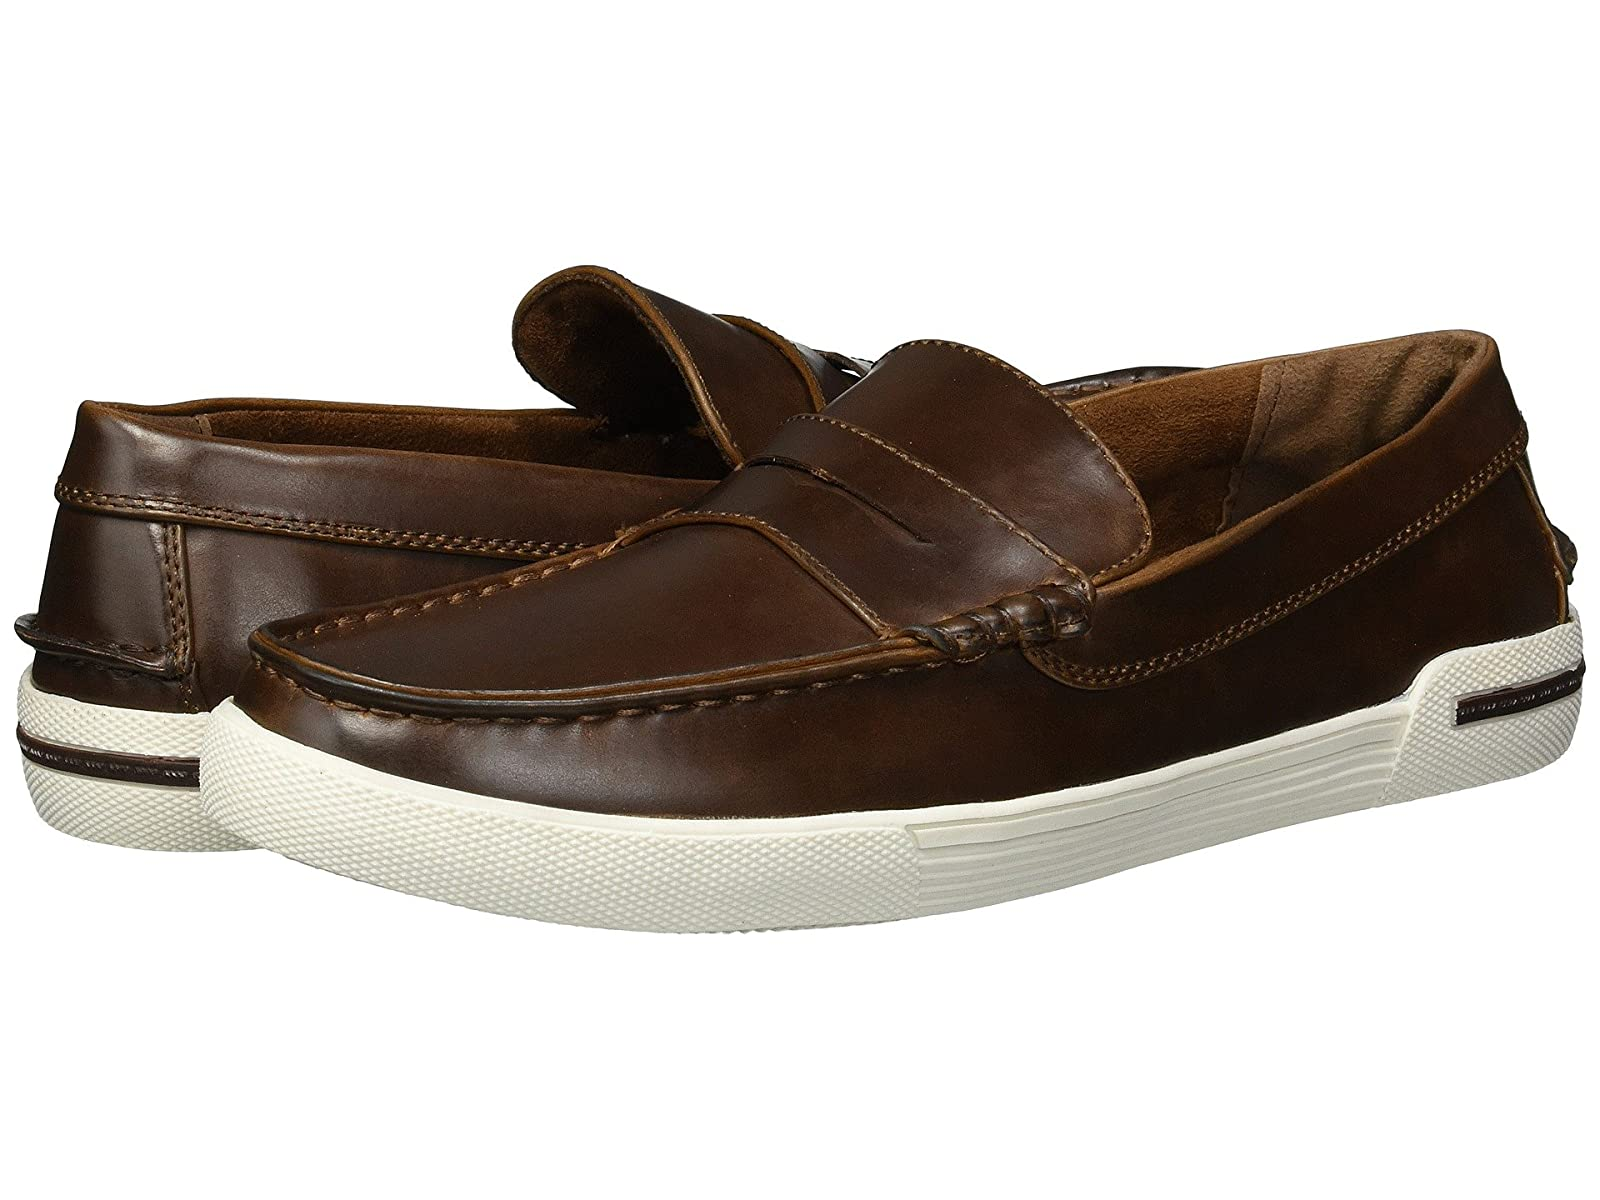 Kenneth Cole Unlisted Un-AnchorCheap and distinctive eye-catching shoes